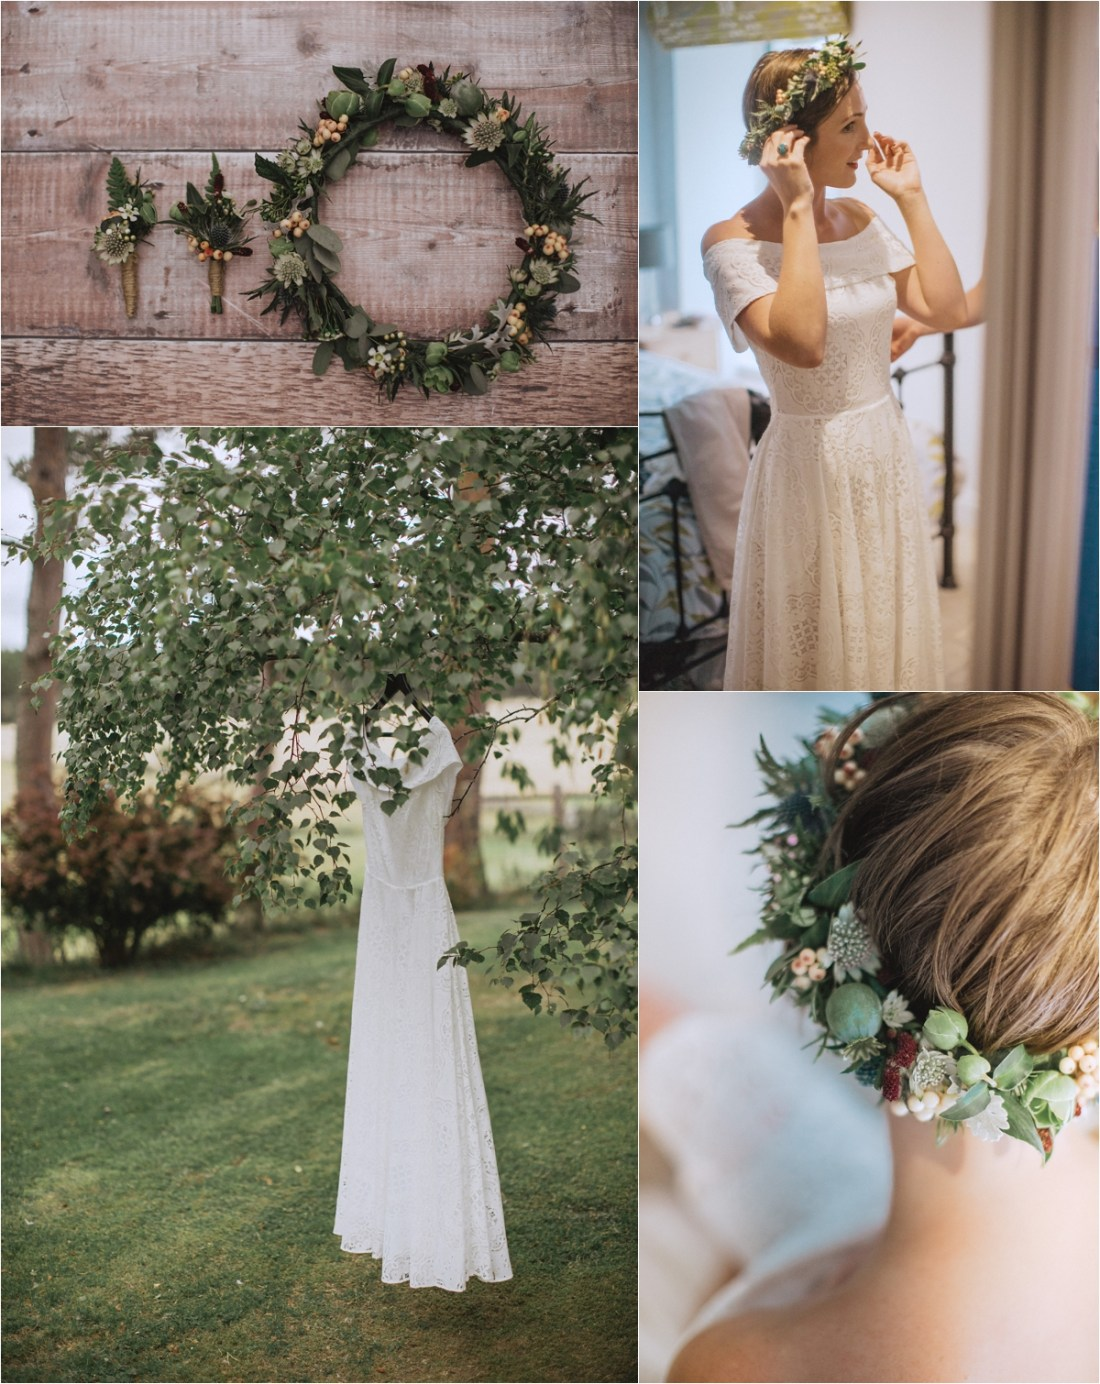 Bohemian bridal details for a DIY sheep farm wedding by Fox & Bear Photography